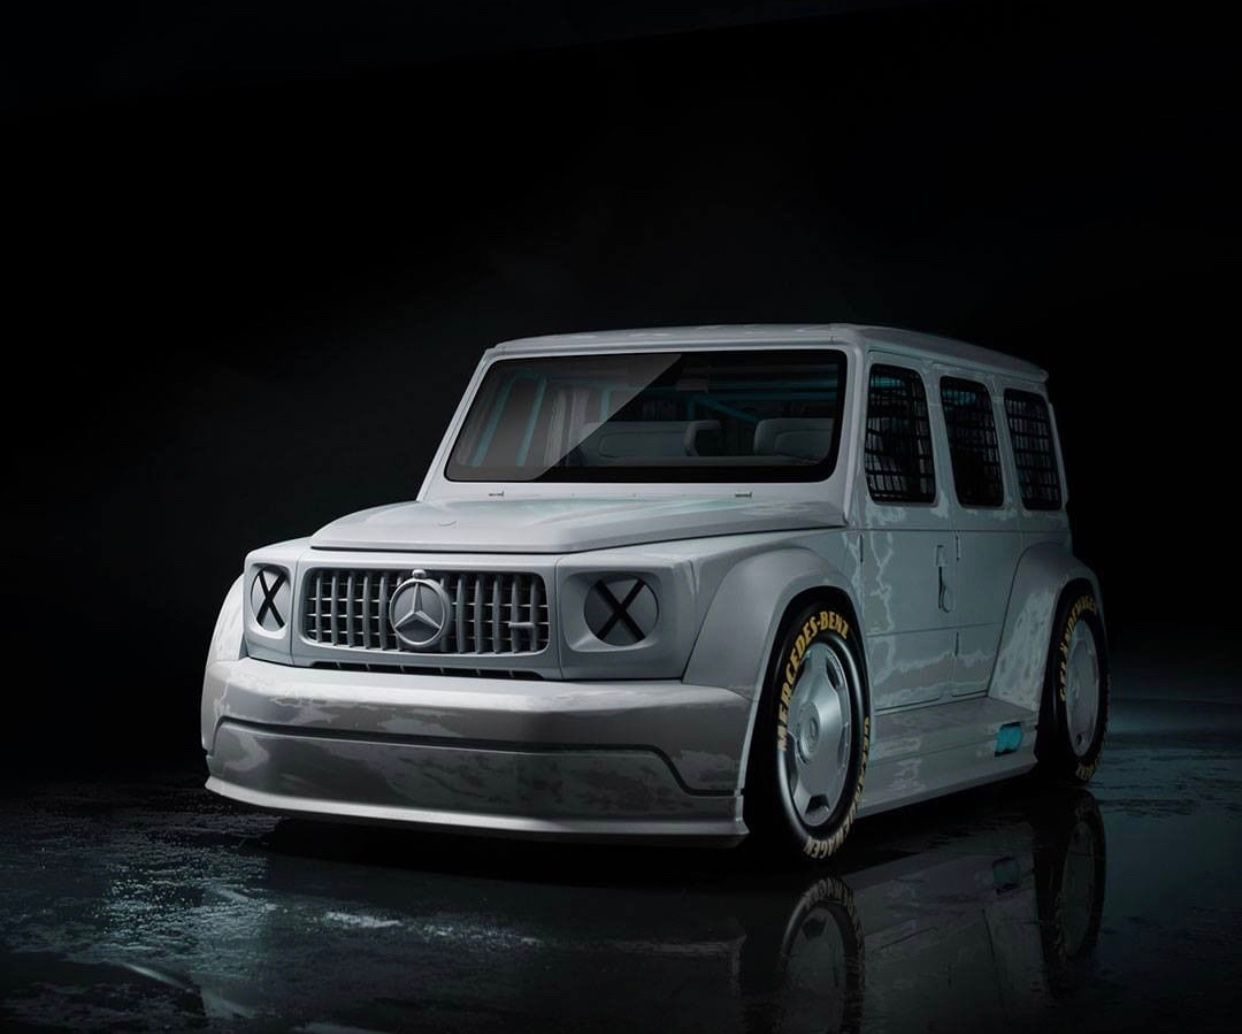 Virgil Abloh and Mercedes G-Class Collaboration Revealed